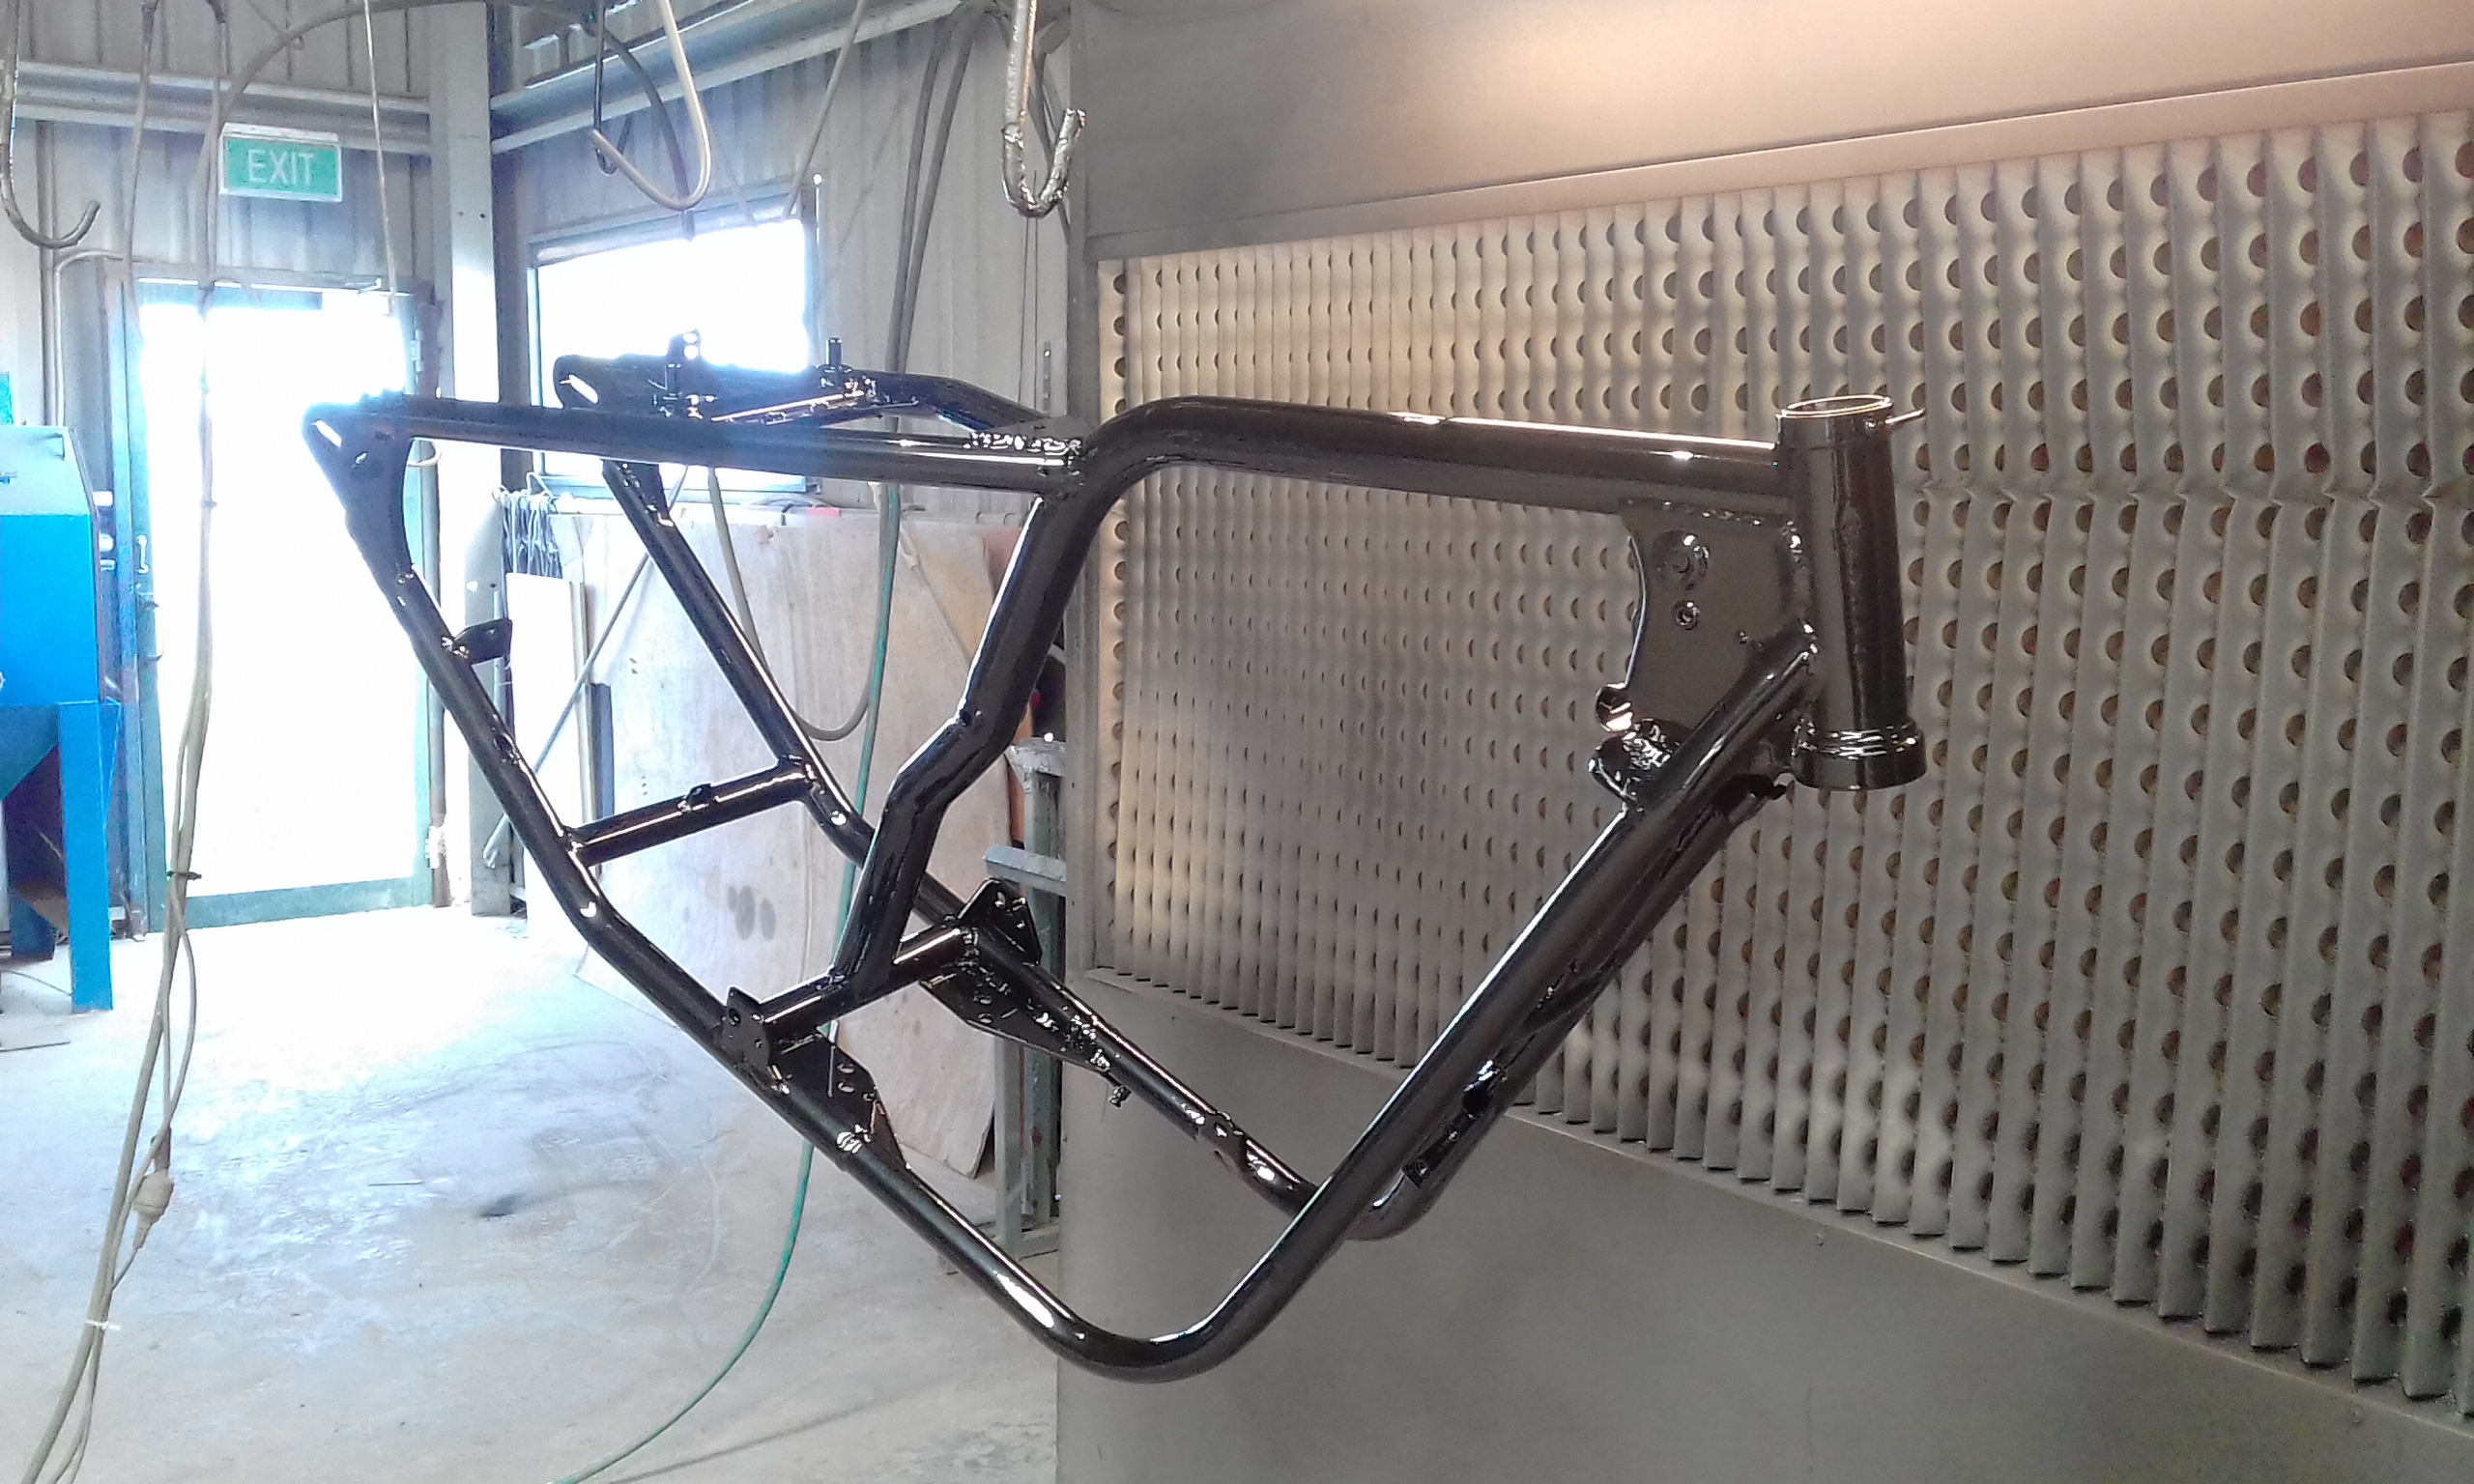 Powder coating - Oxytec Jet black gloss - Bobber chopper frame